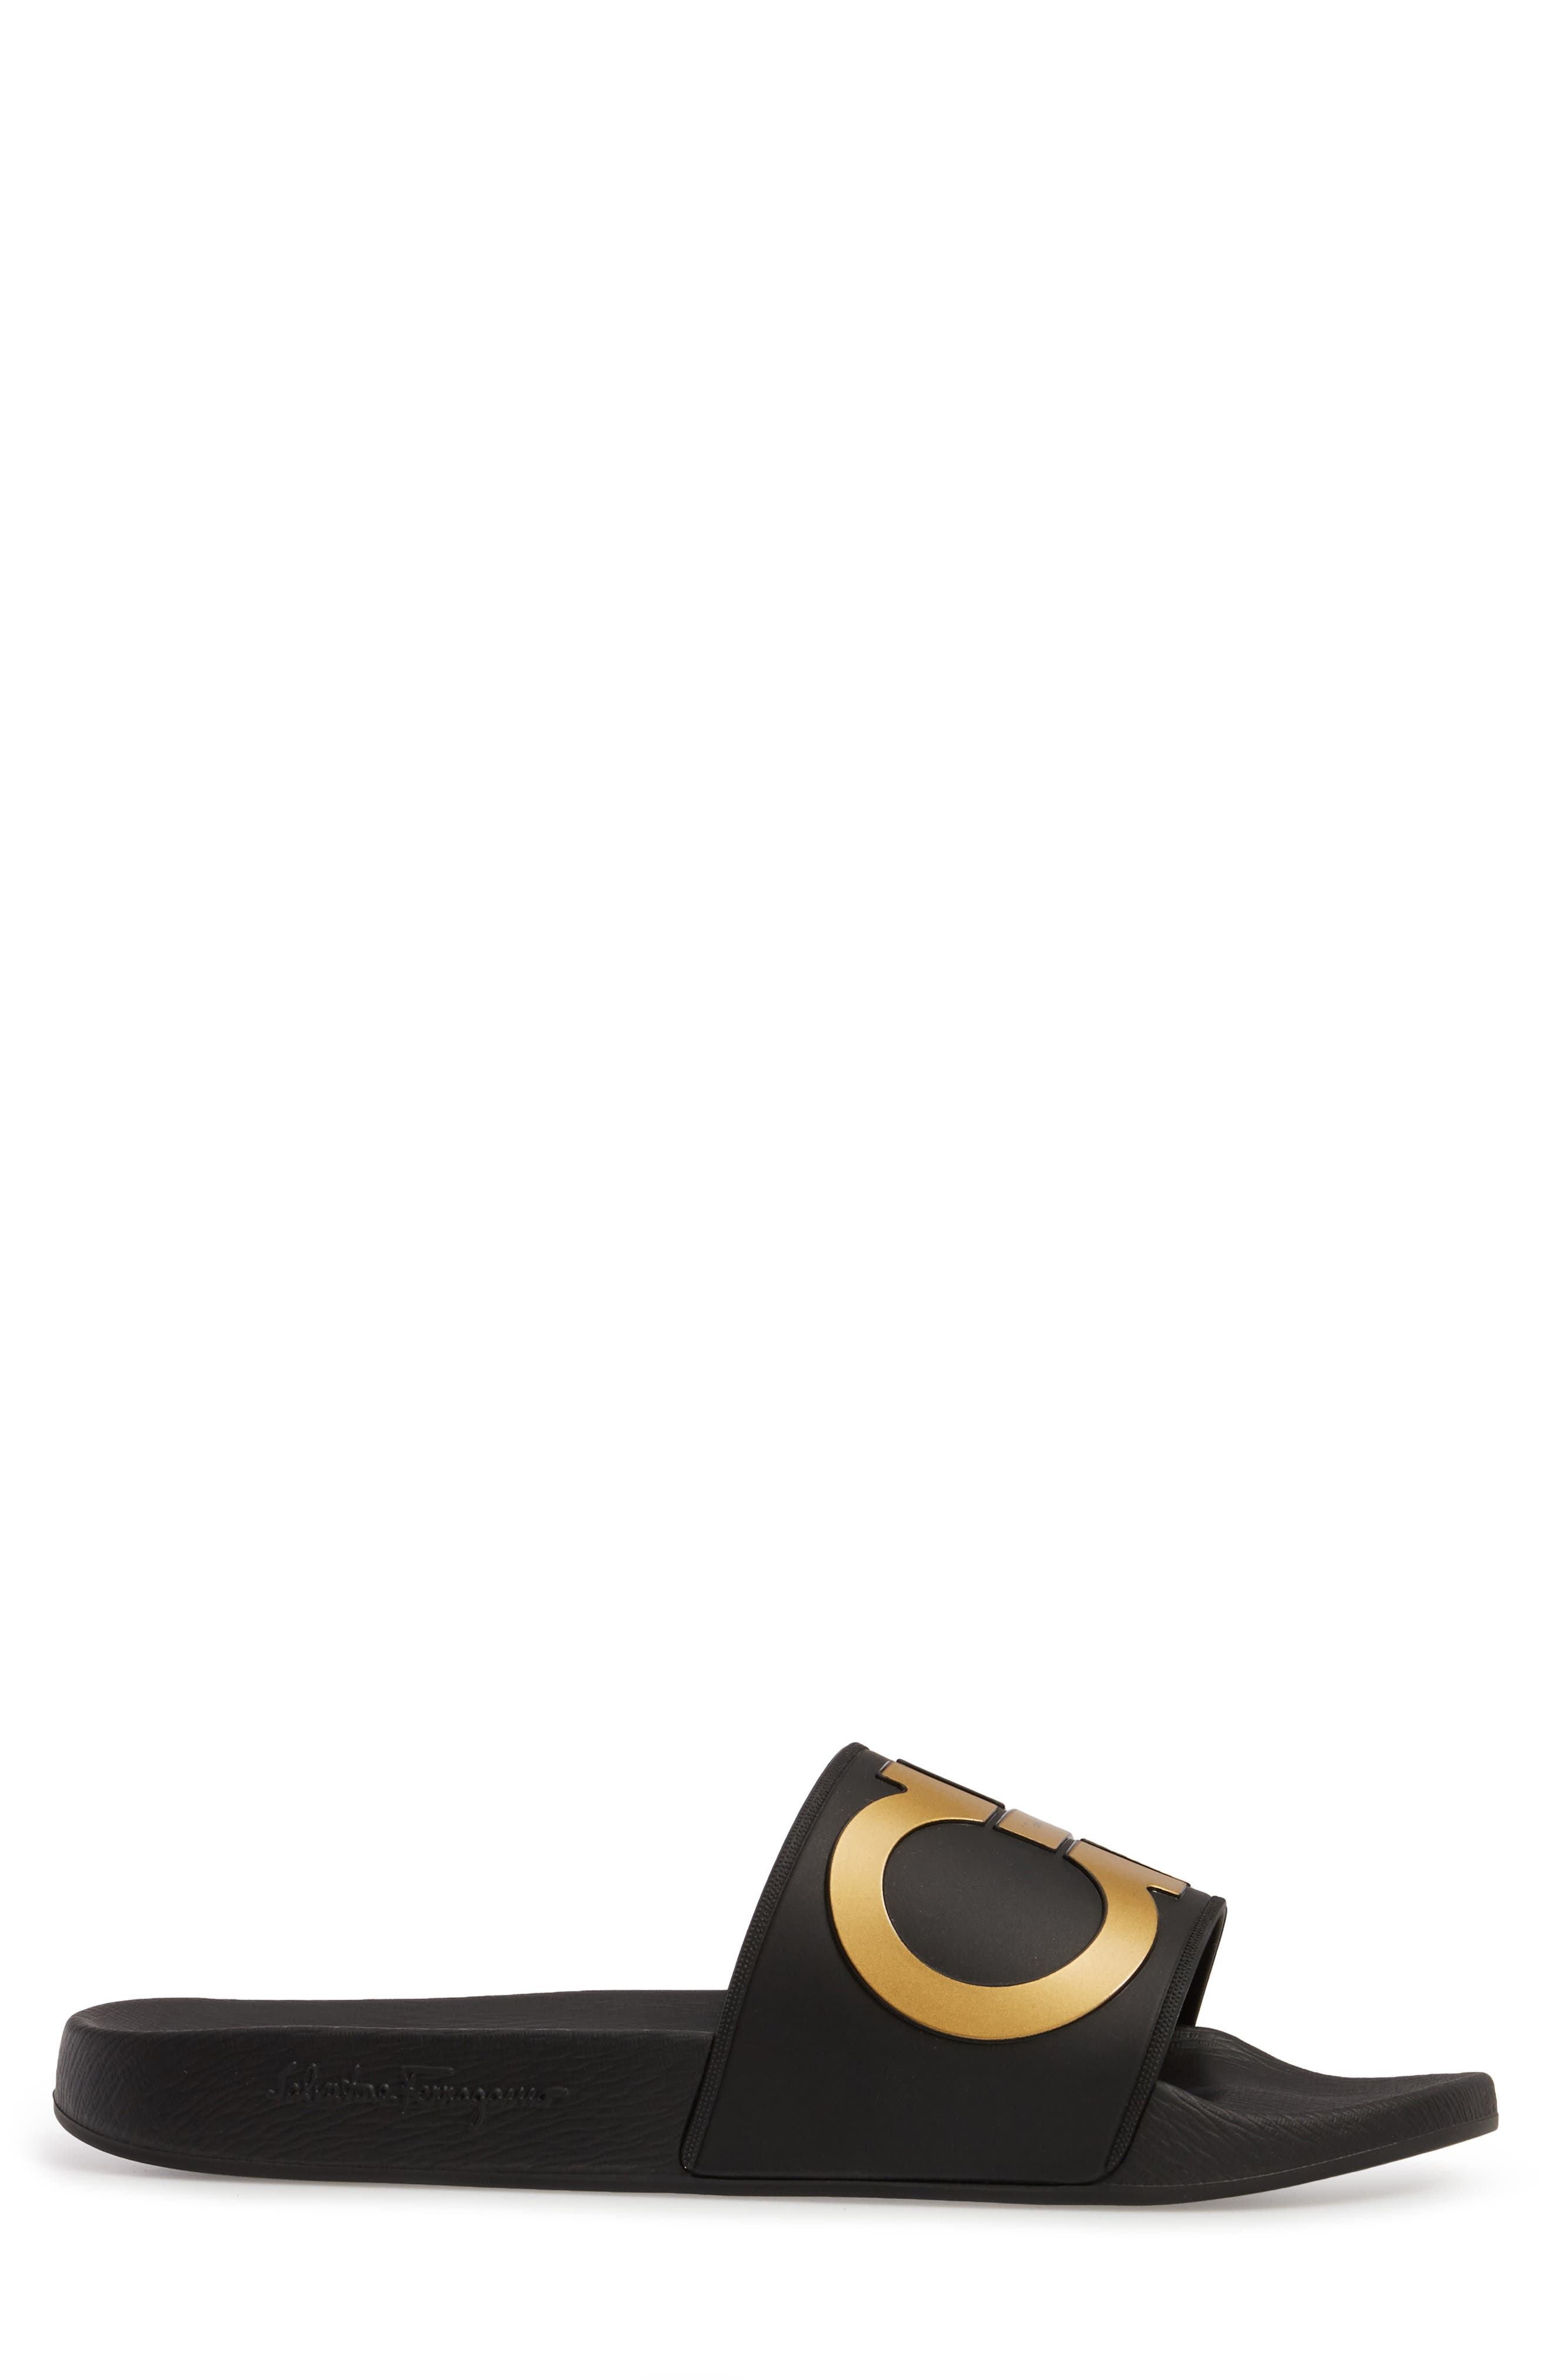 Groove 2 Slide Sandal,                             Alternate thumbnail 3, color,                             BLACK/GOLD